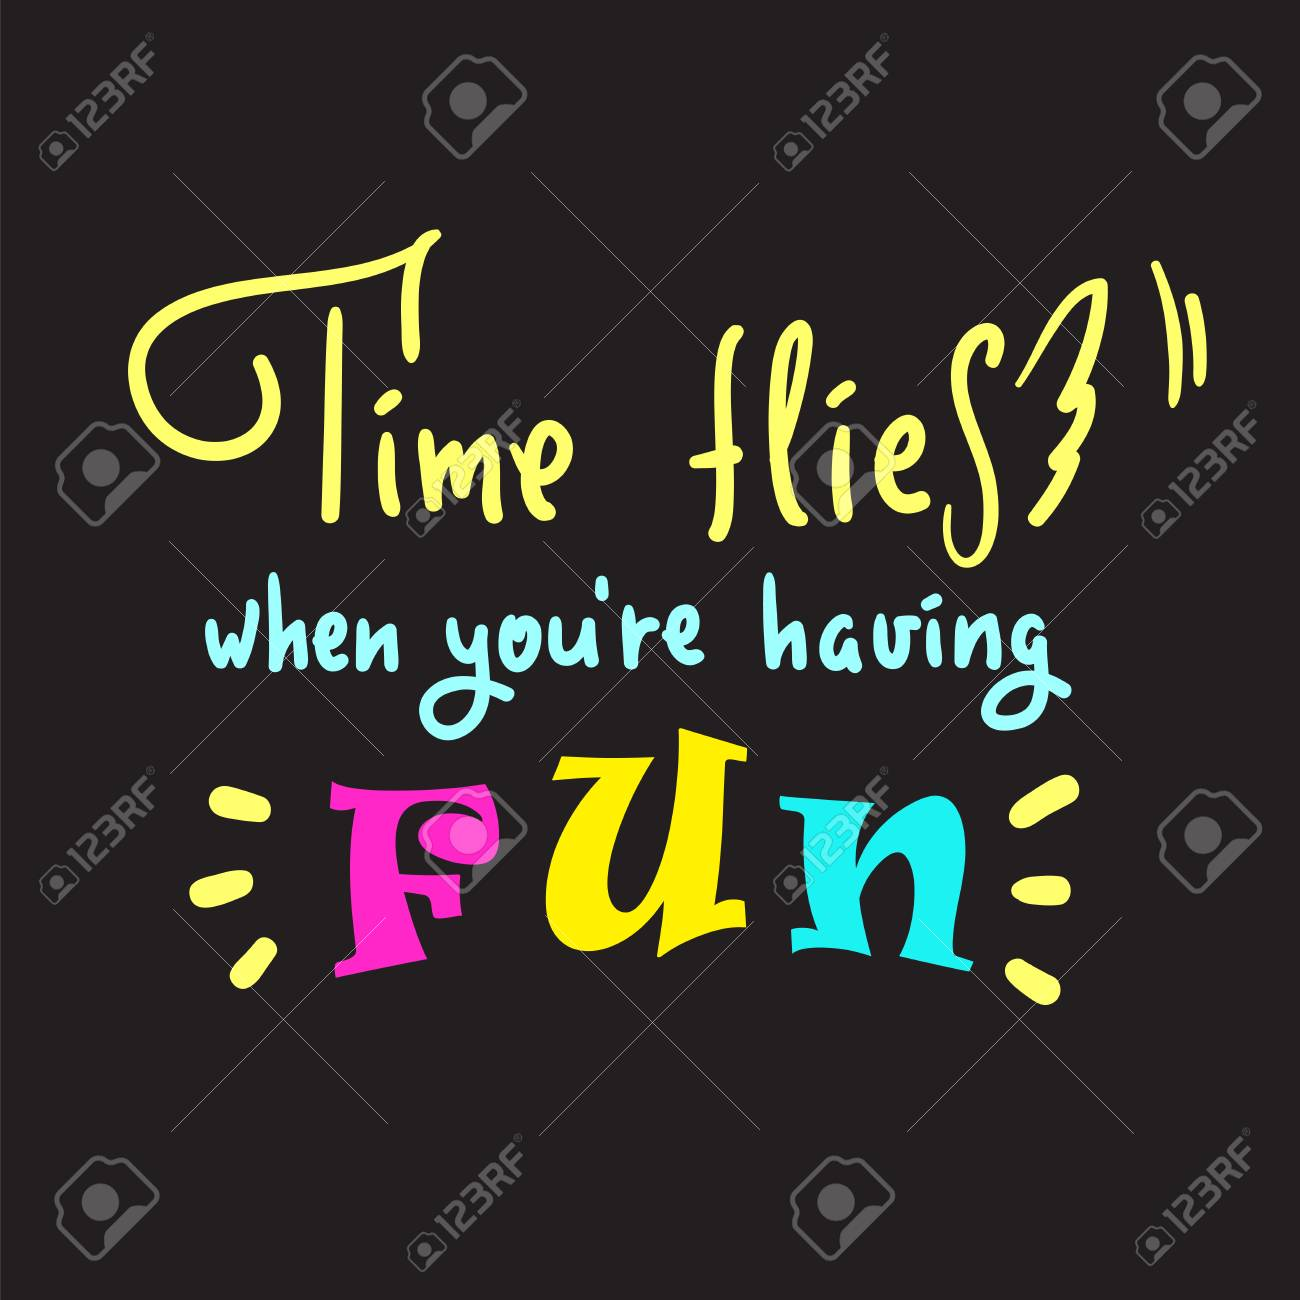 Time flies when you\'re having fun-inspire and motivational quote...